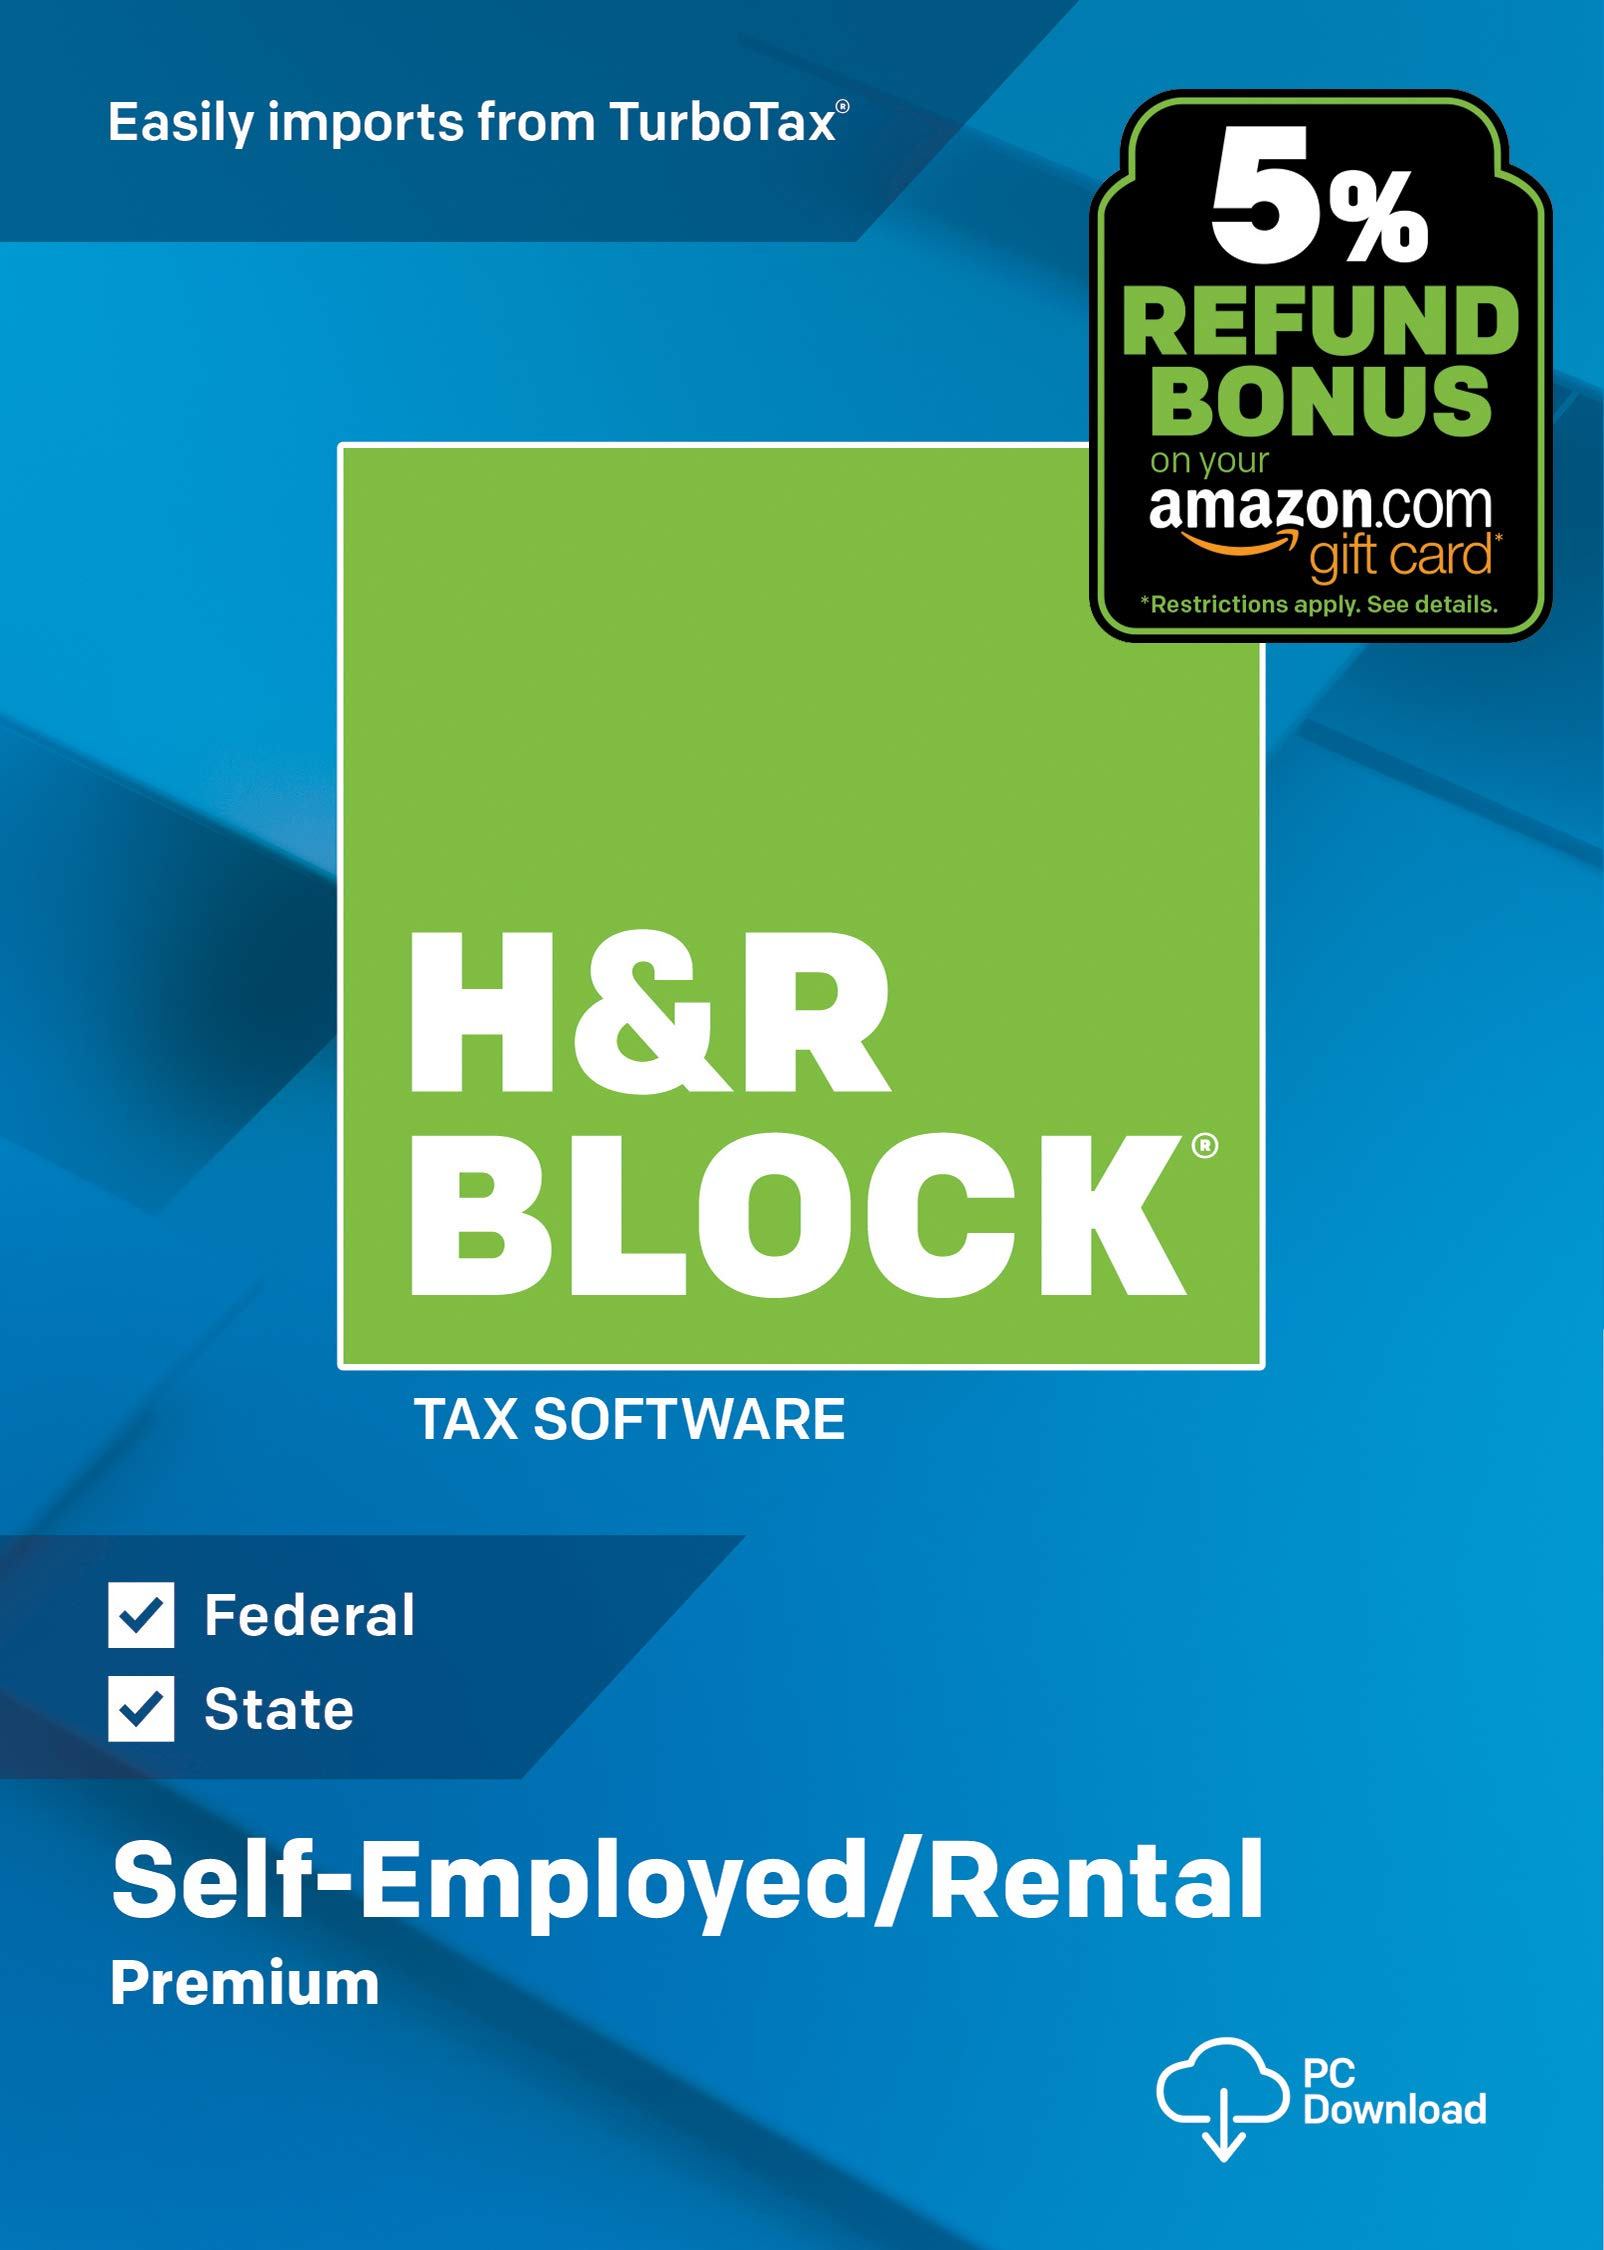 H&R Block Tax Software Premium 2018 with 5% Refund Bonus Offer [Amazon Exclusive] [PC Download] by H&R Block